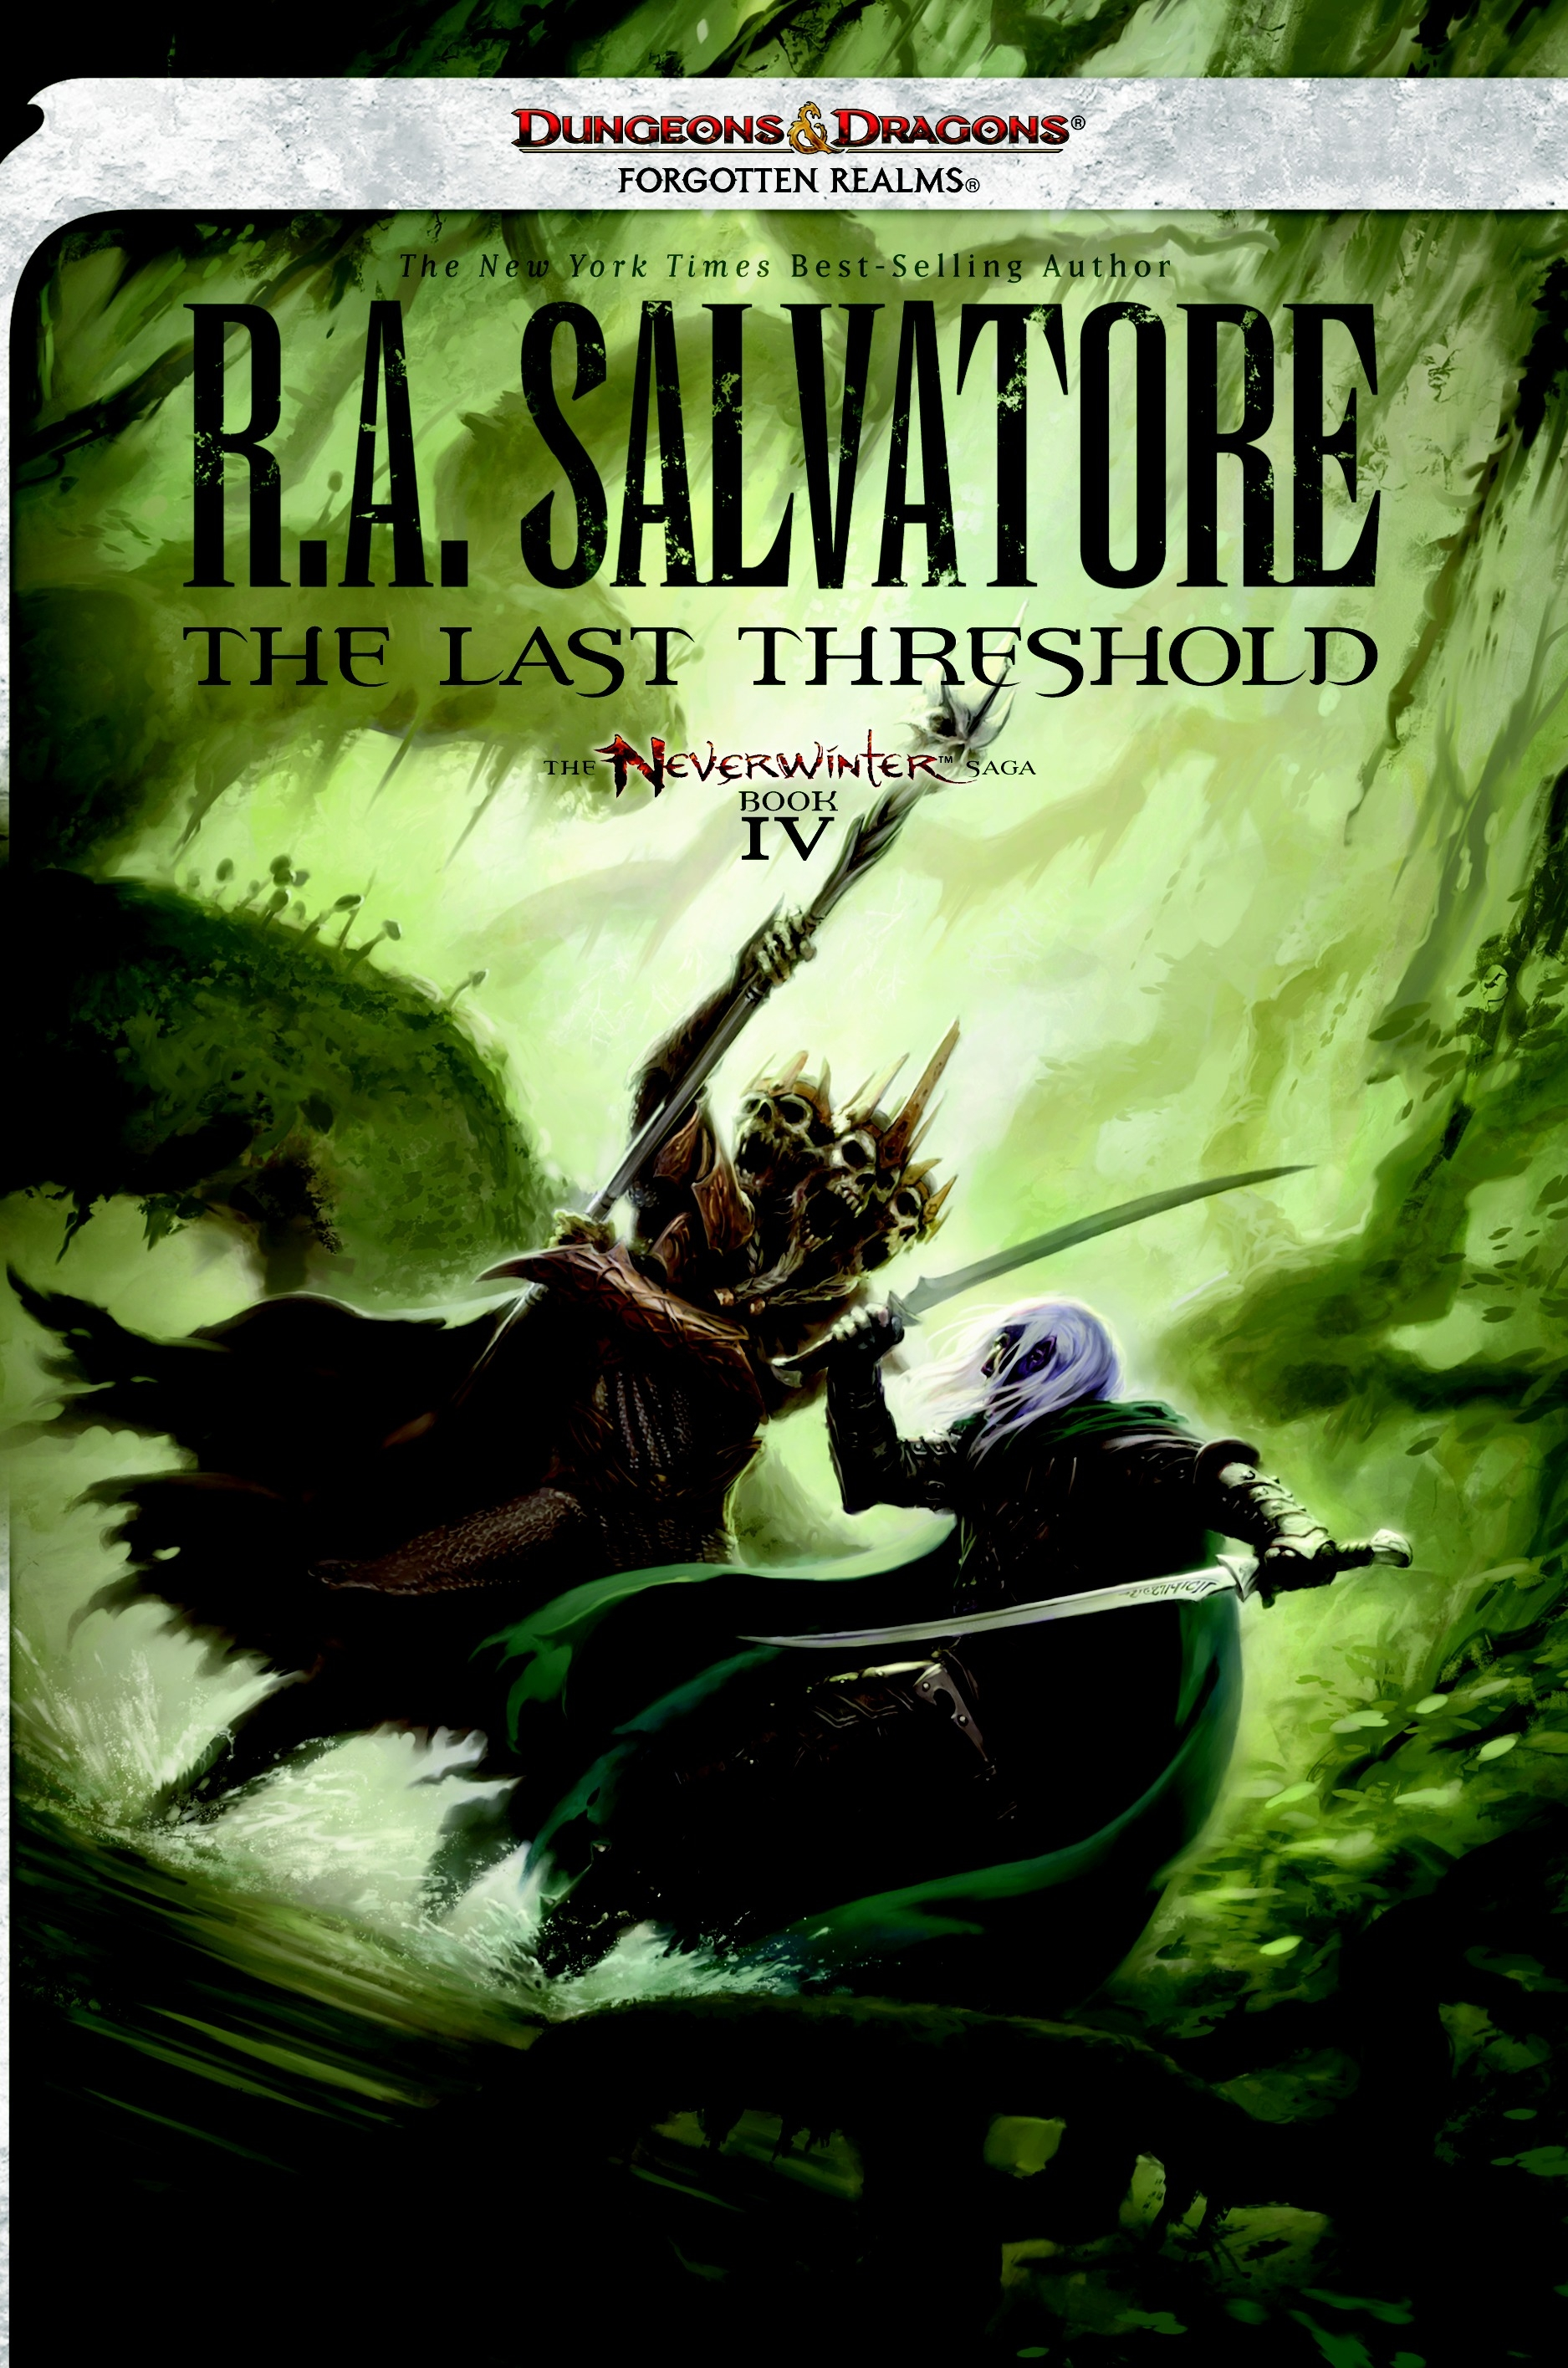 The Last Threshold